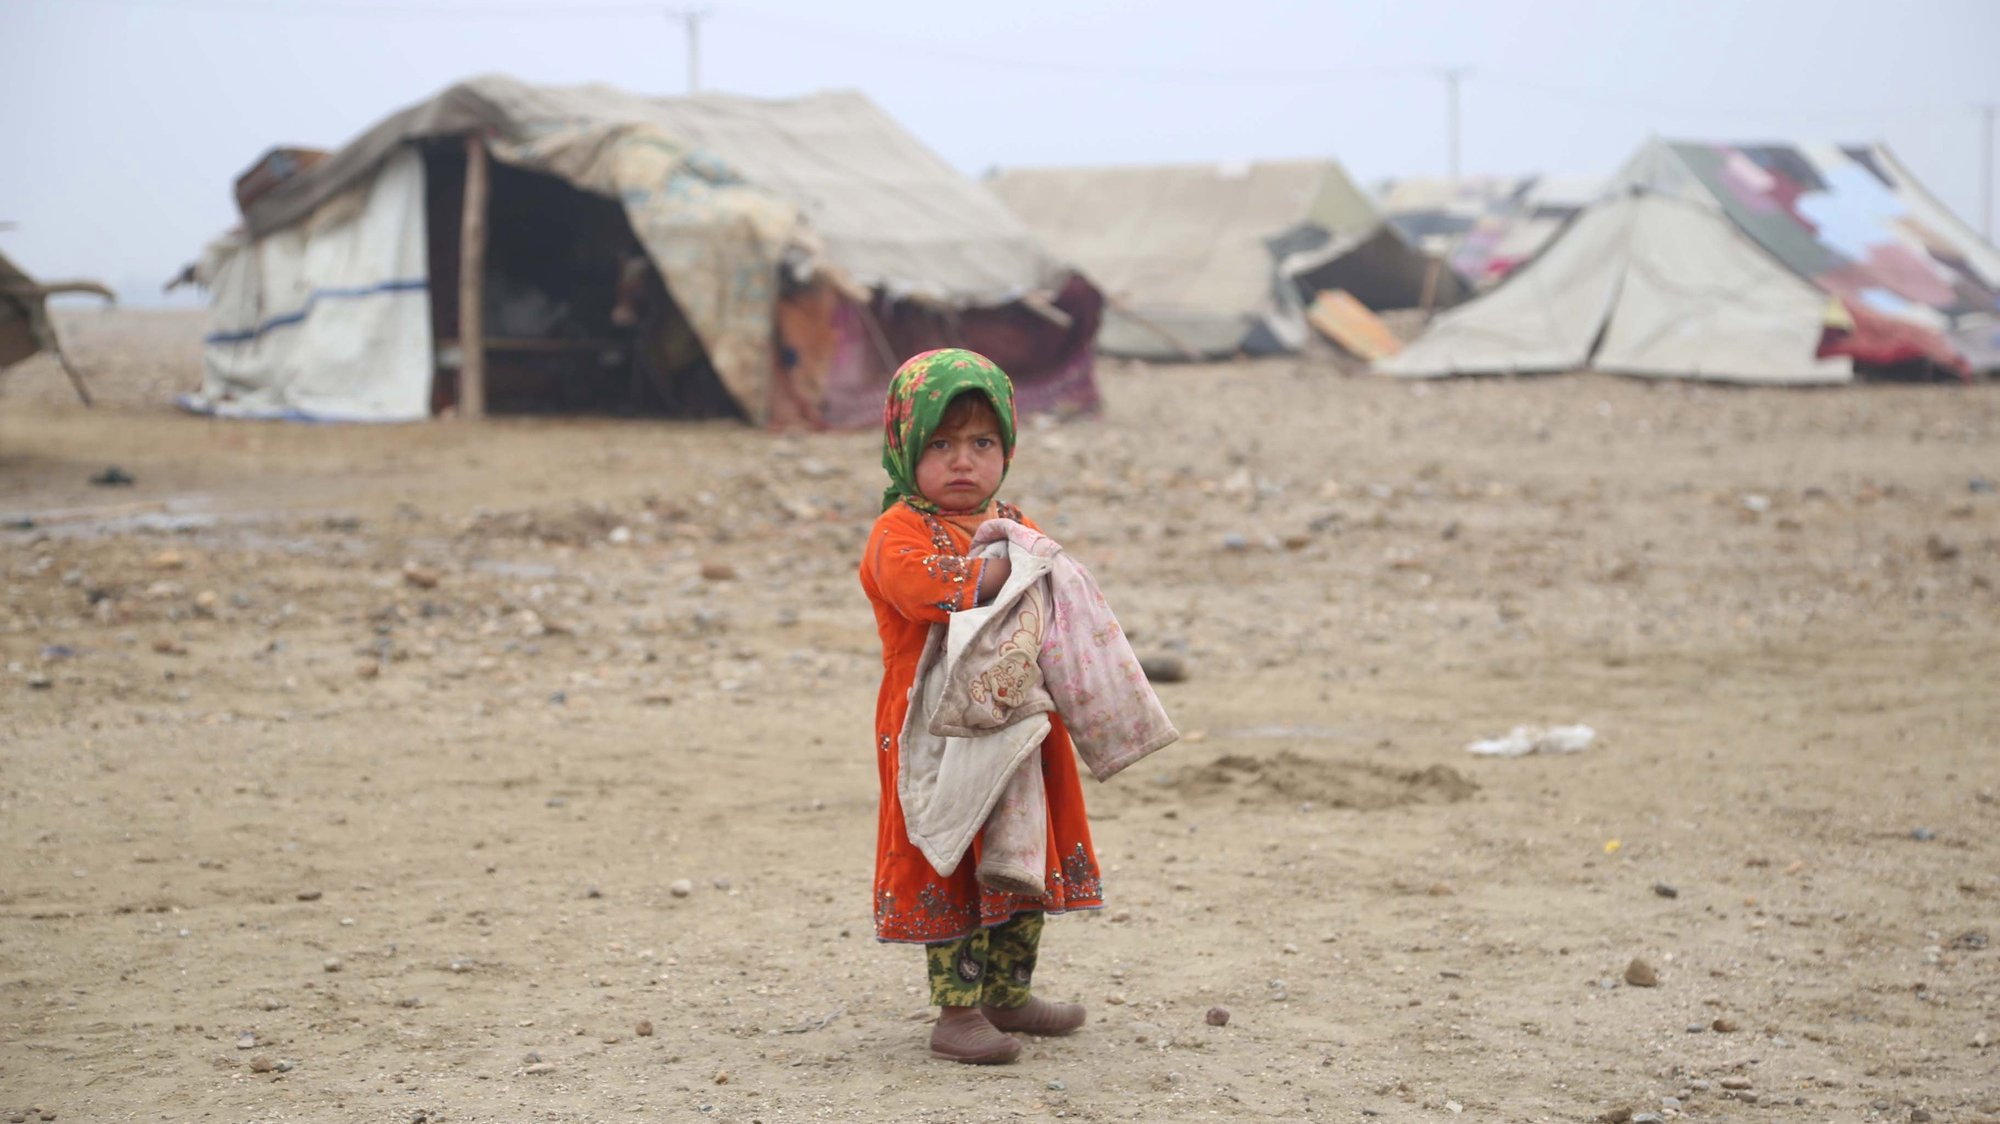 epaselect epa08843696 A child, who fled with its family after Taliban launched massive attacks in different districts of Helmand province, live in temporary shelters in Sarhrood district of Nangarhar province, Afghanistan, 26 November 2020. At least 26,025 Afghan children have been killed or permanently disabled in the Afghan conflict over the past 14 years, since 2005, nonprofit Save the Children said in a report published on 23 November.  EPA/GHULAMULLAH HABIBI